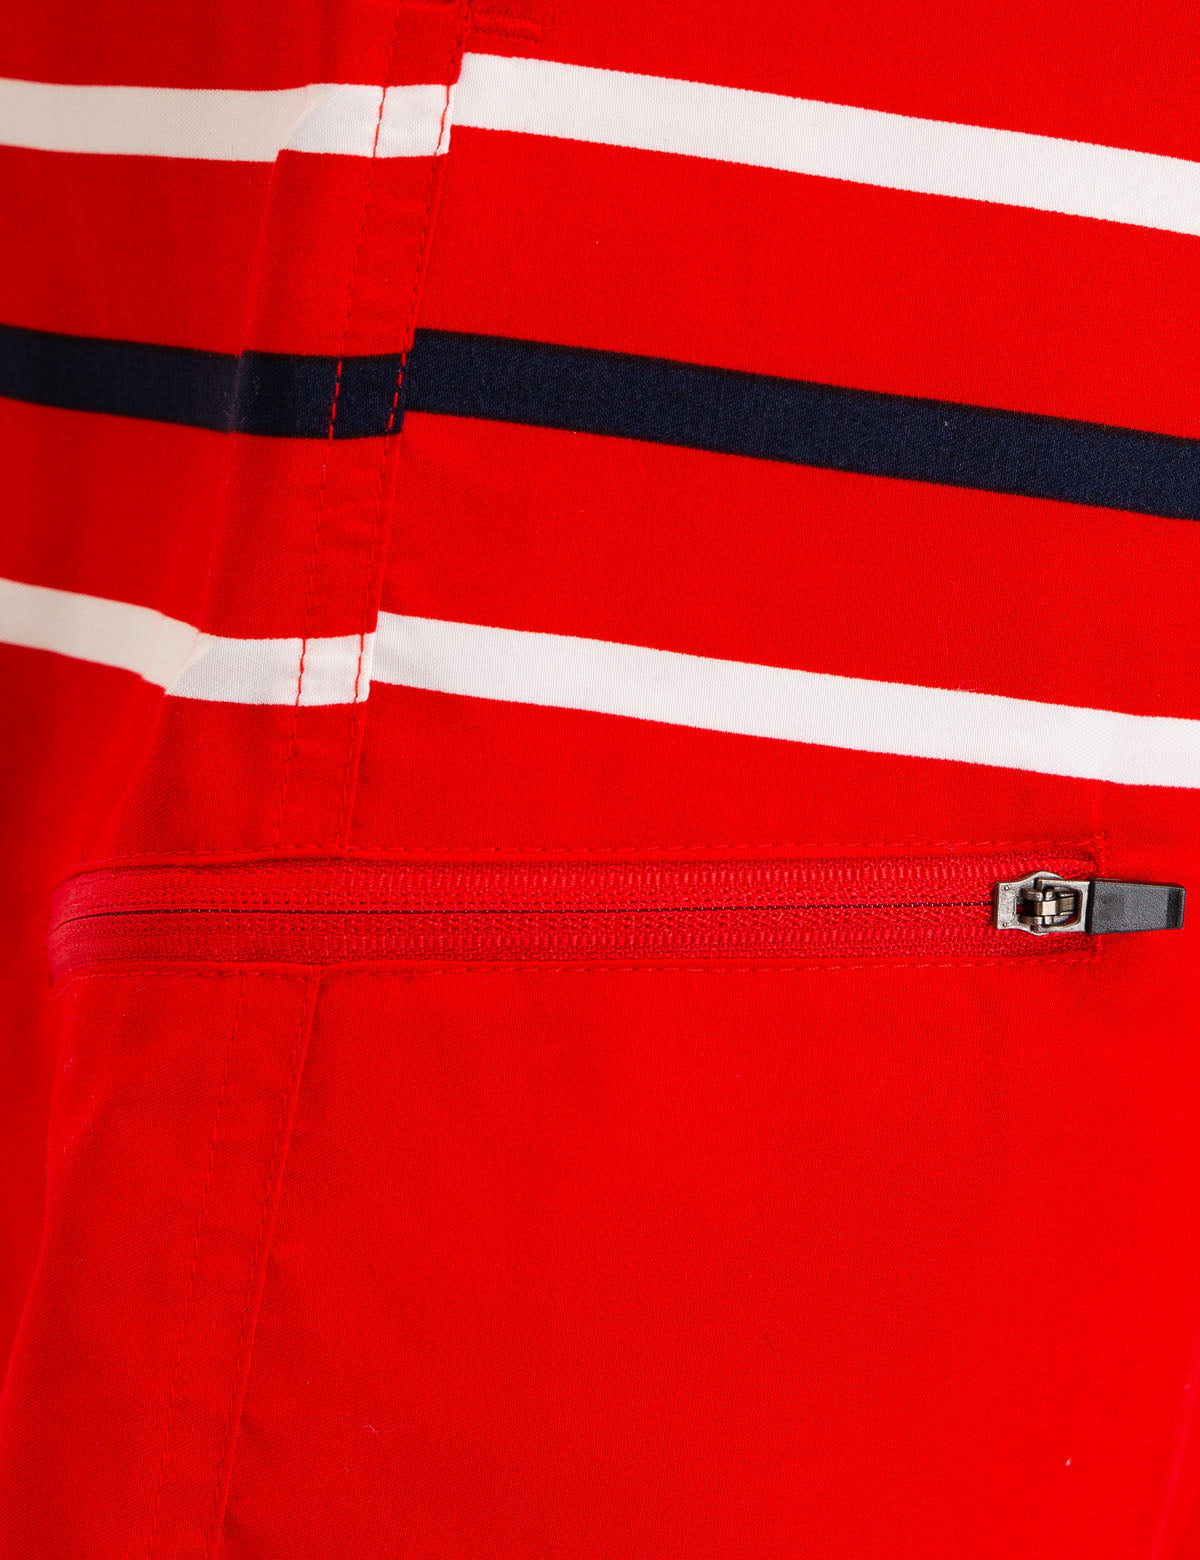 STRIPED SWIM TRUNKS - U.S. Polo Assn.